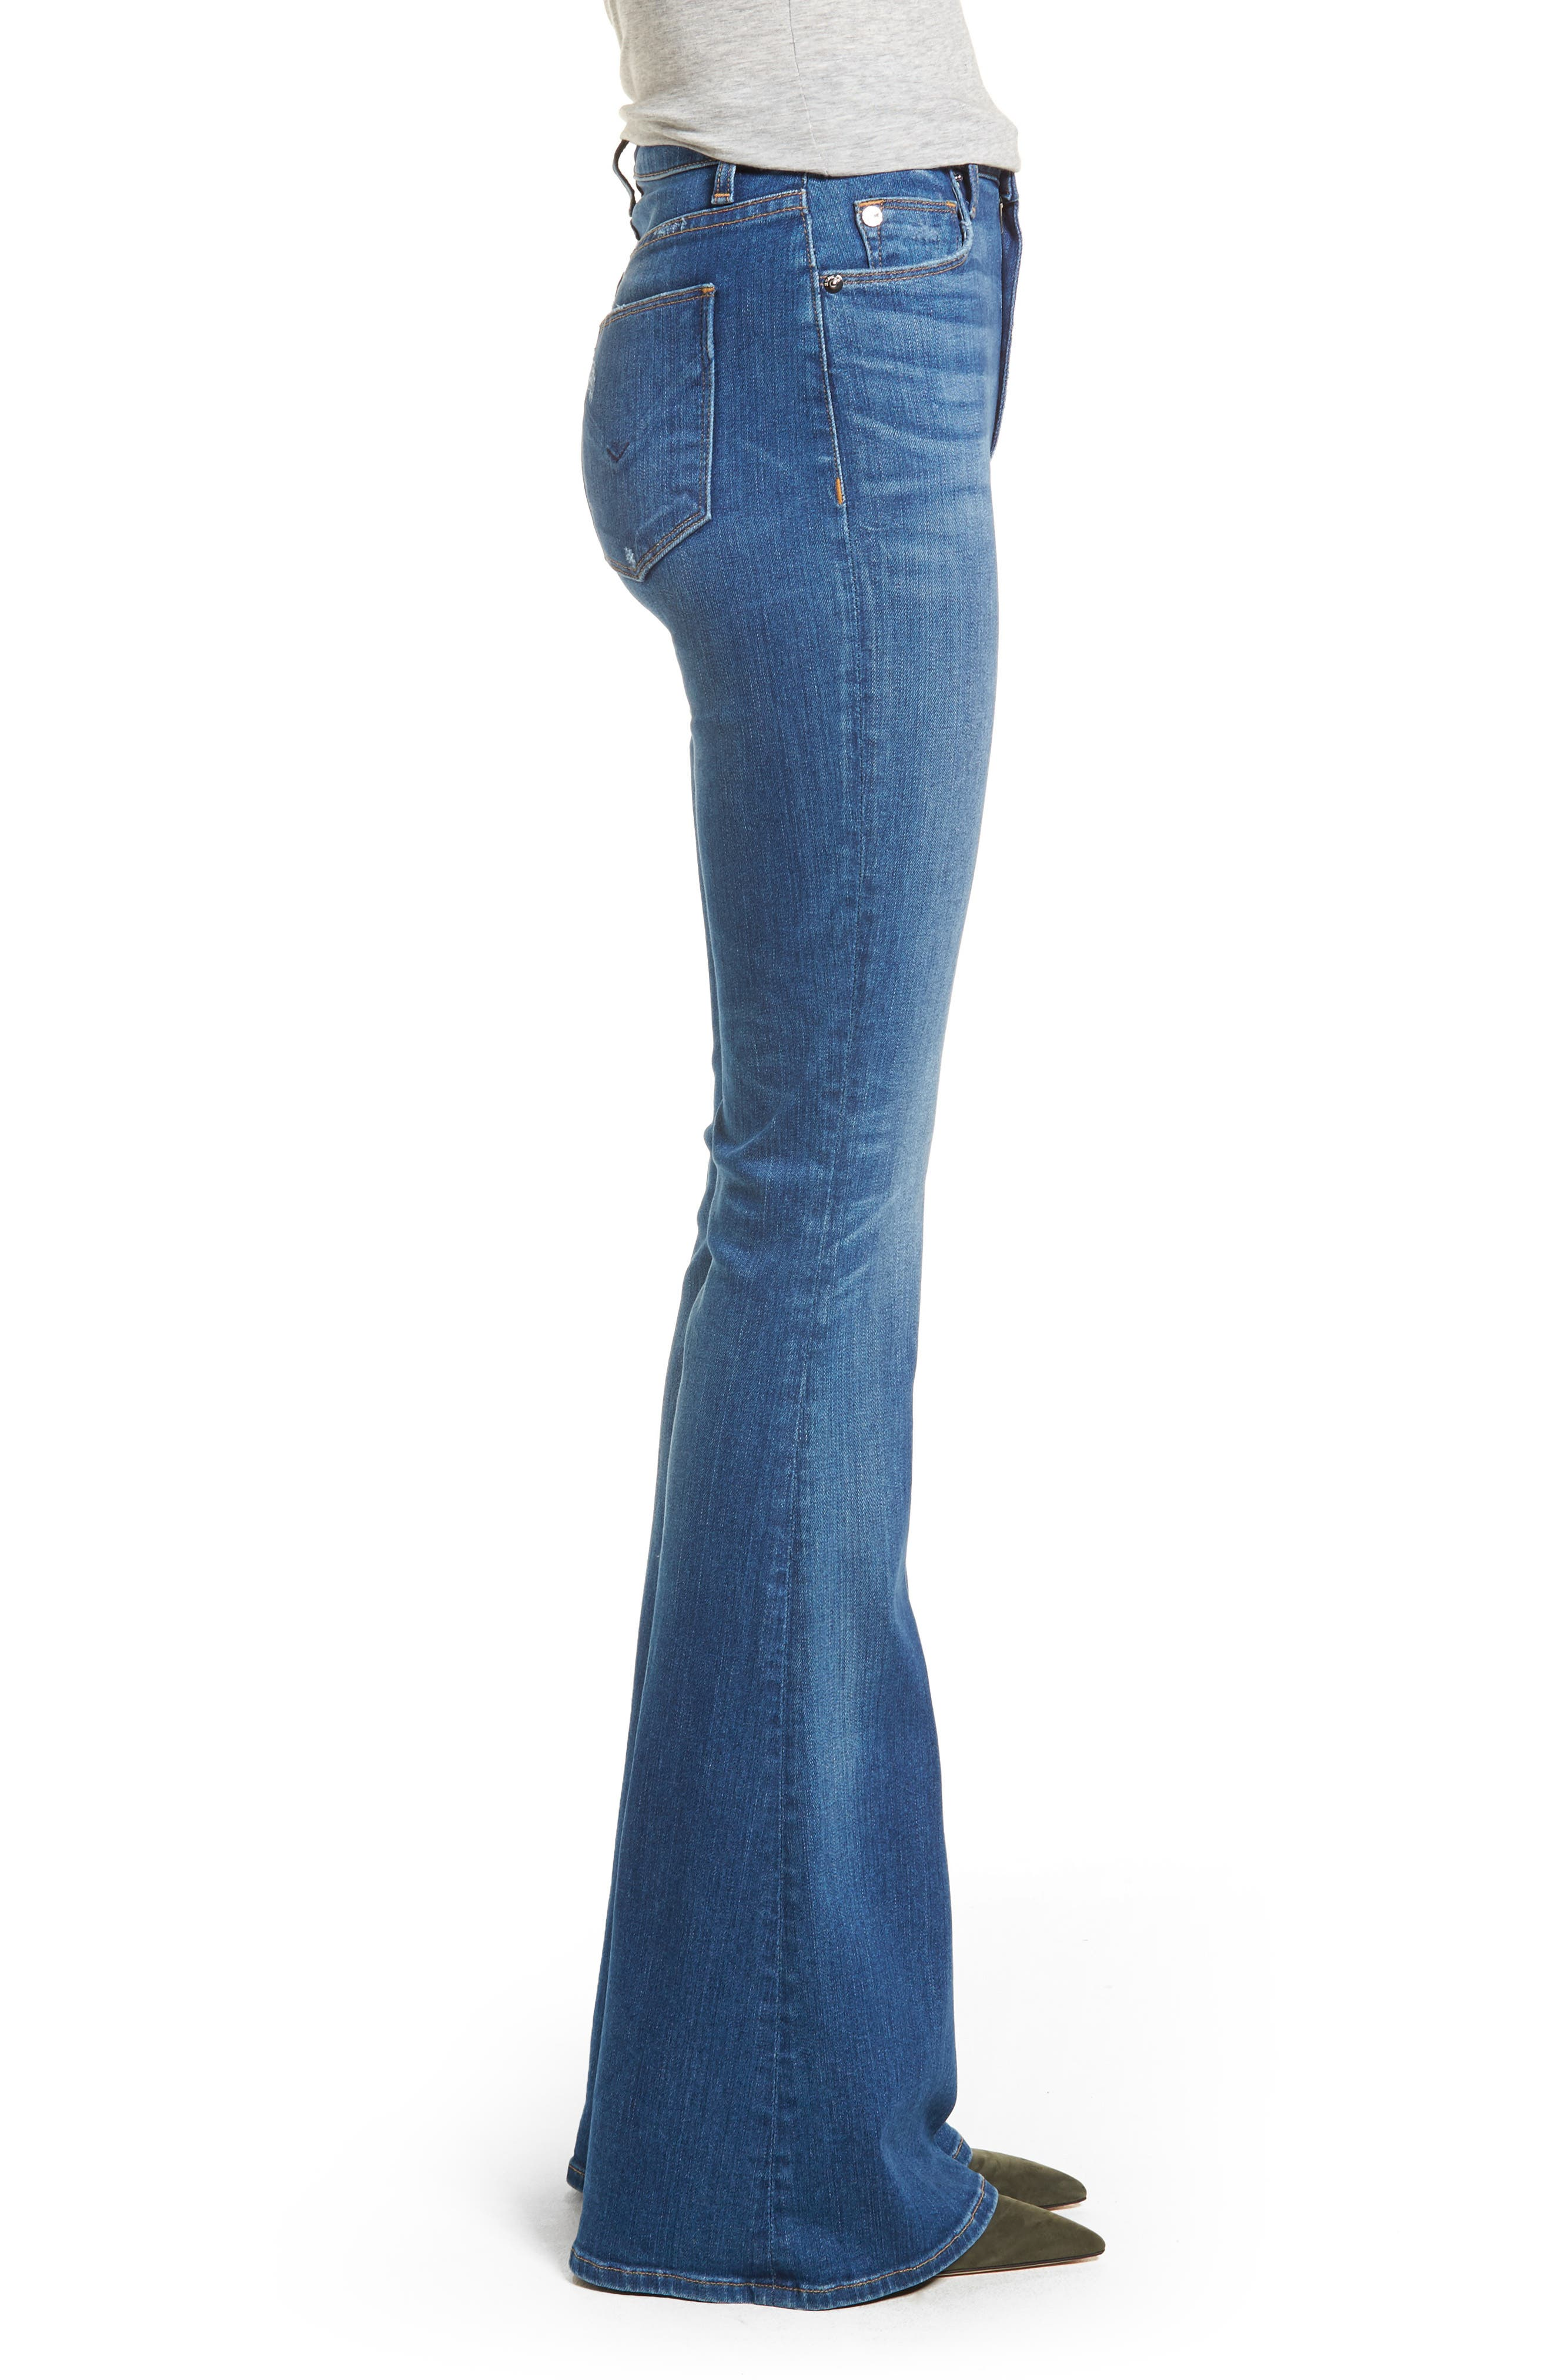 Alternate Image 3  - Hudson Jeans Holly High Waist Flare Jeans (Rogue)